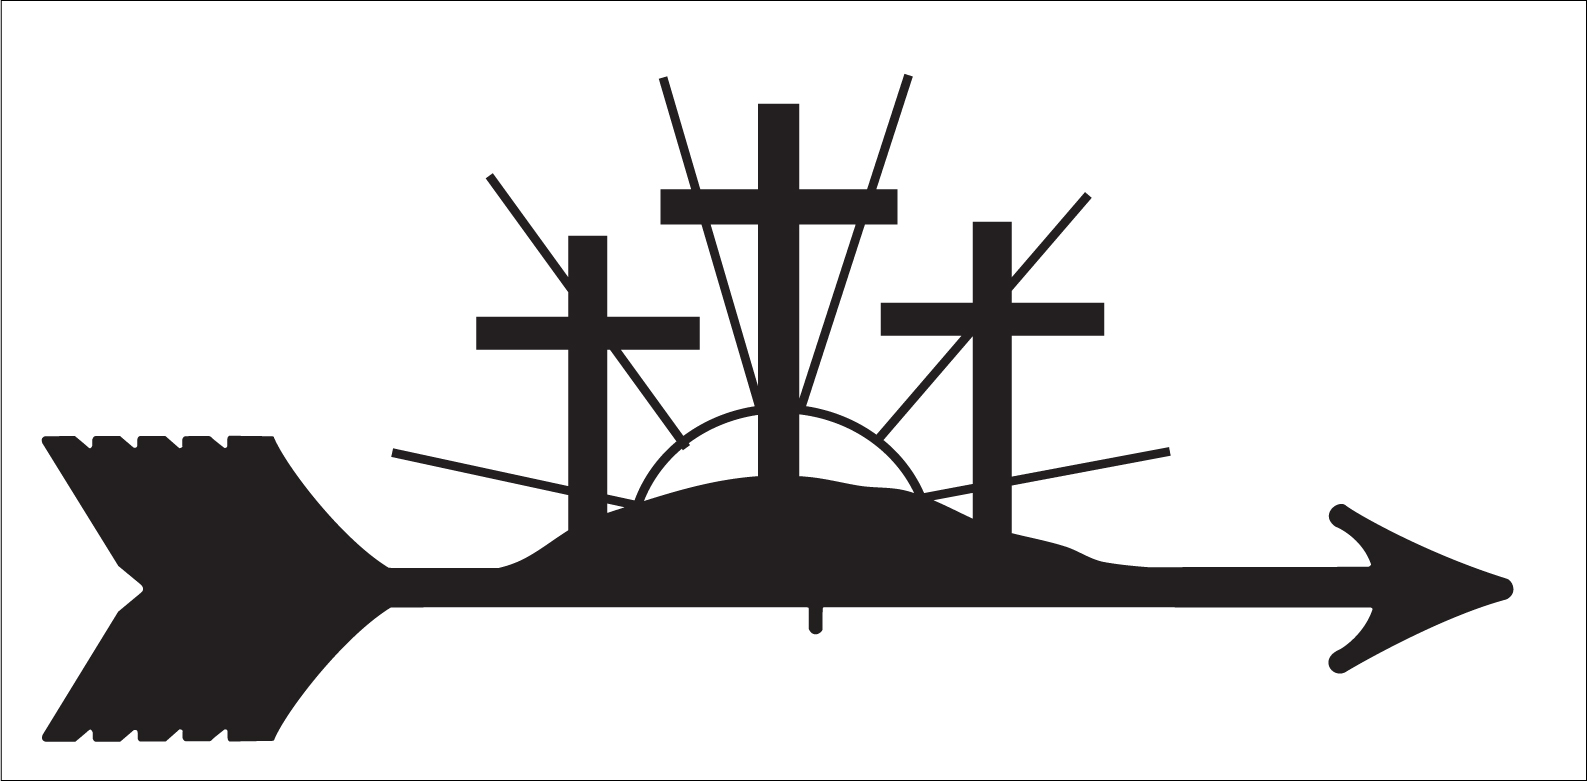 3 crosses clipart 24 free Cliparts | Download images on ...